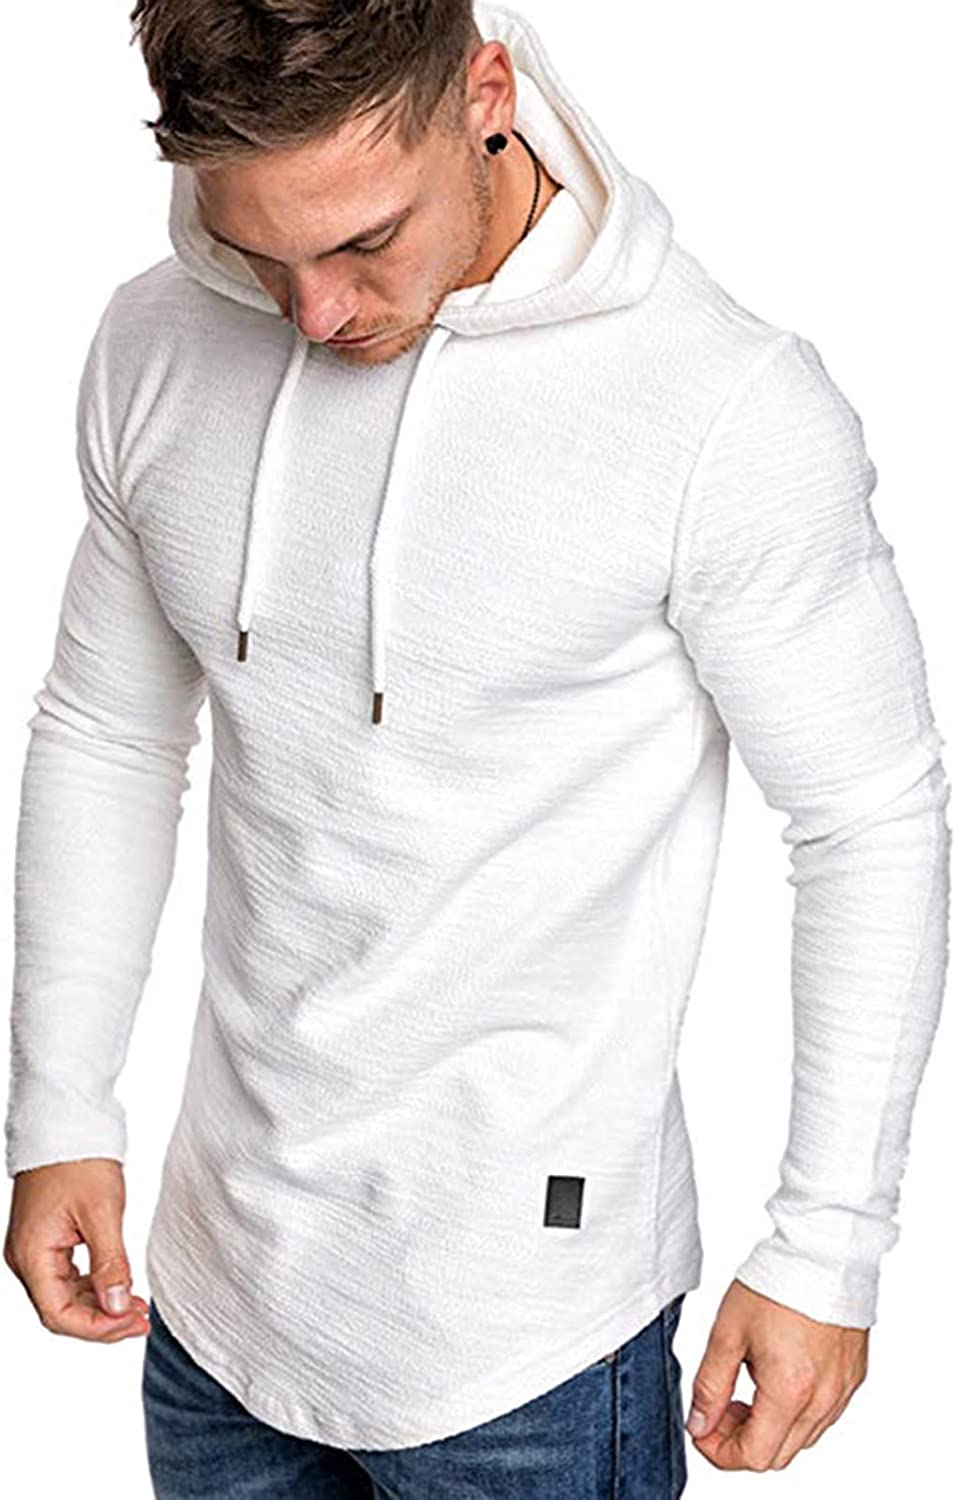 Mens Fashion Casual Workout Hooded T-Shirts Sport Hoodies Long Sleeve Gym Pullover Loose Tops